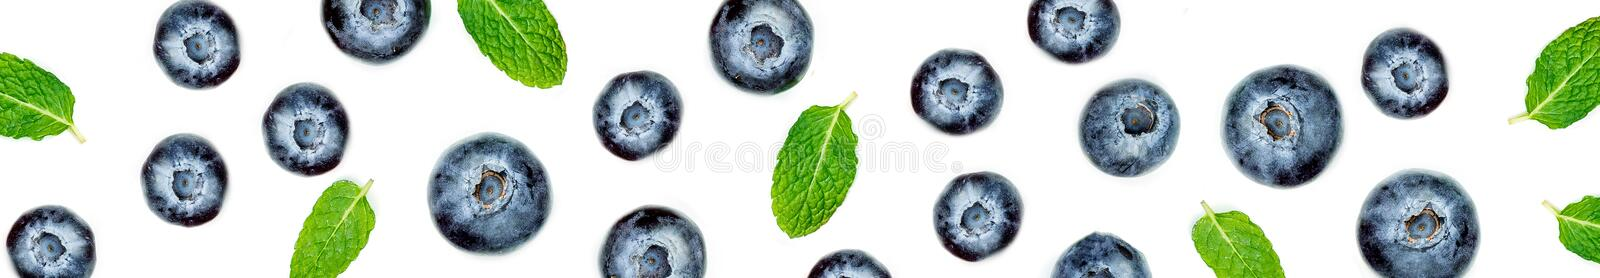 Creative pattern made of blueberries with leaves. Fresh berry f stock photo